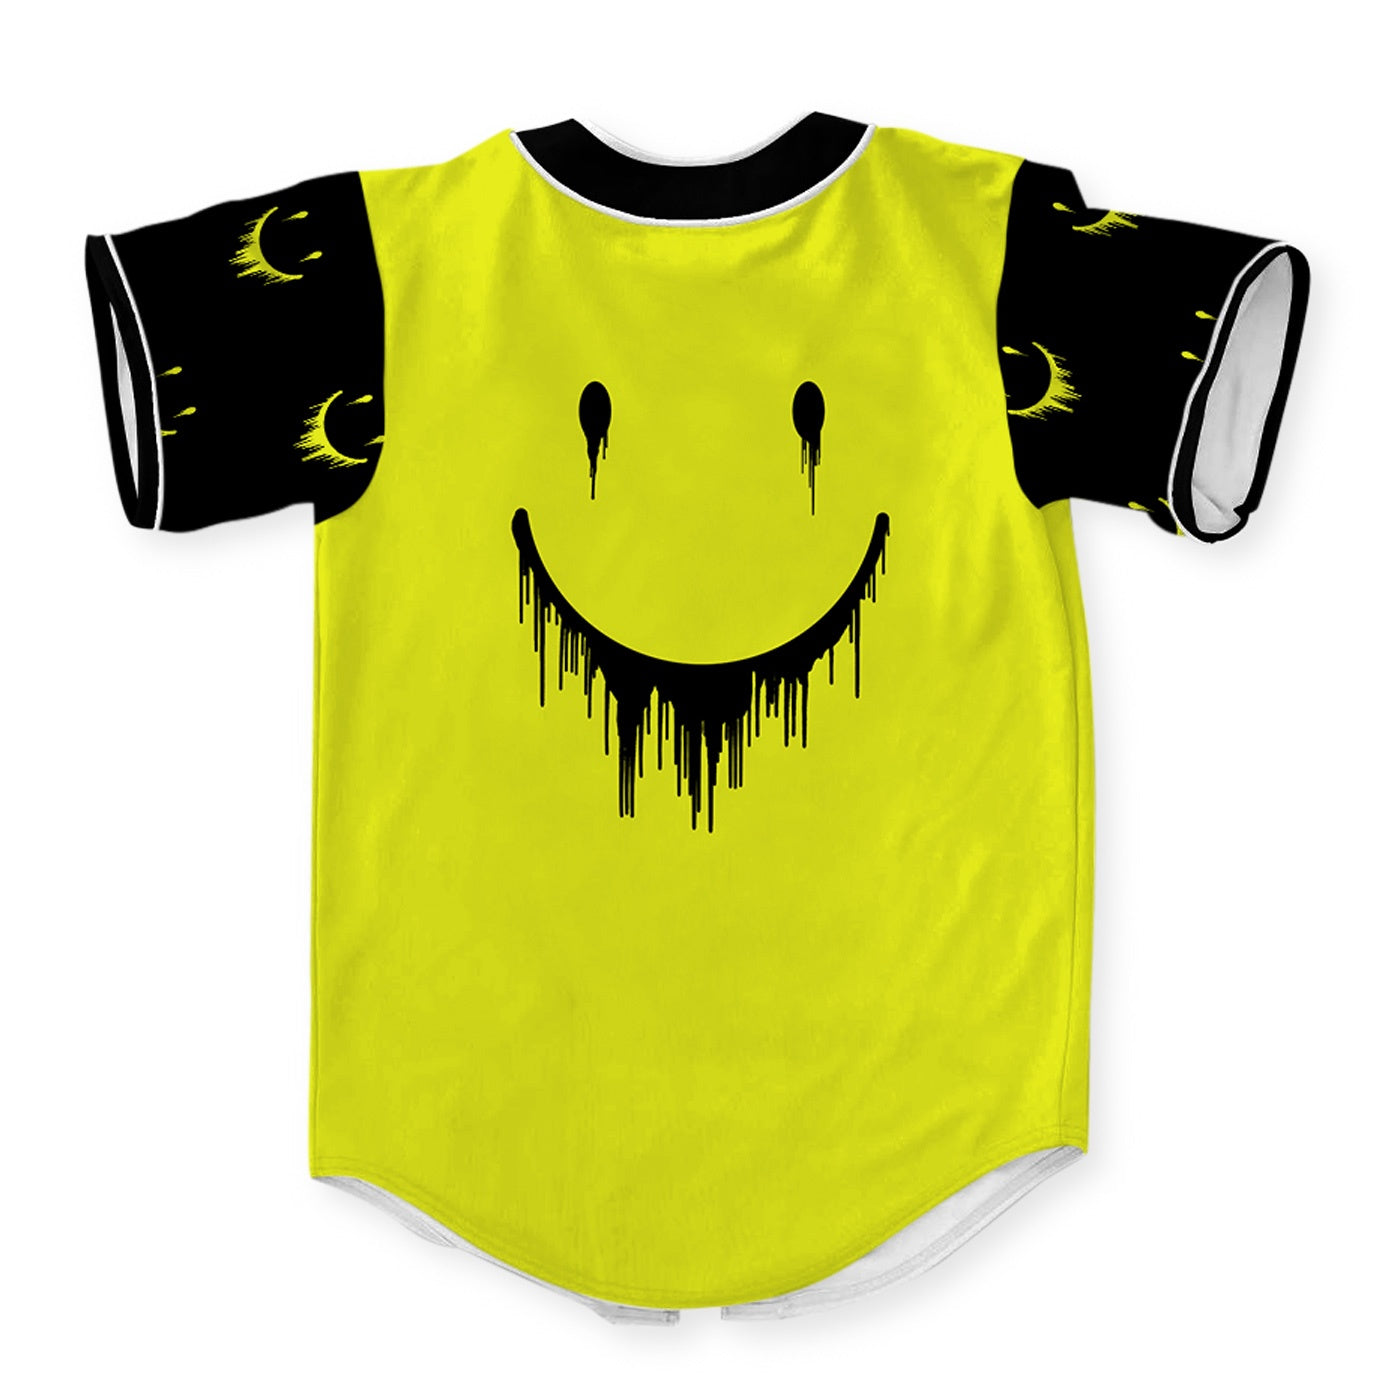 SMILE Jersey